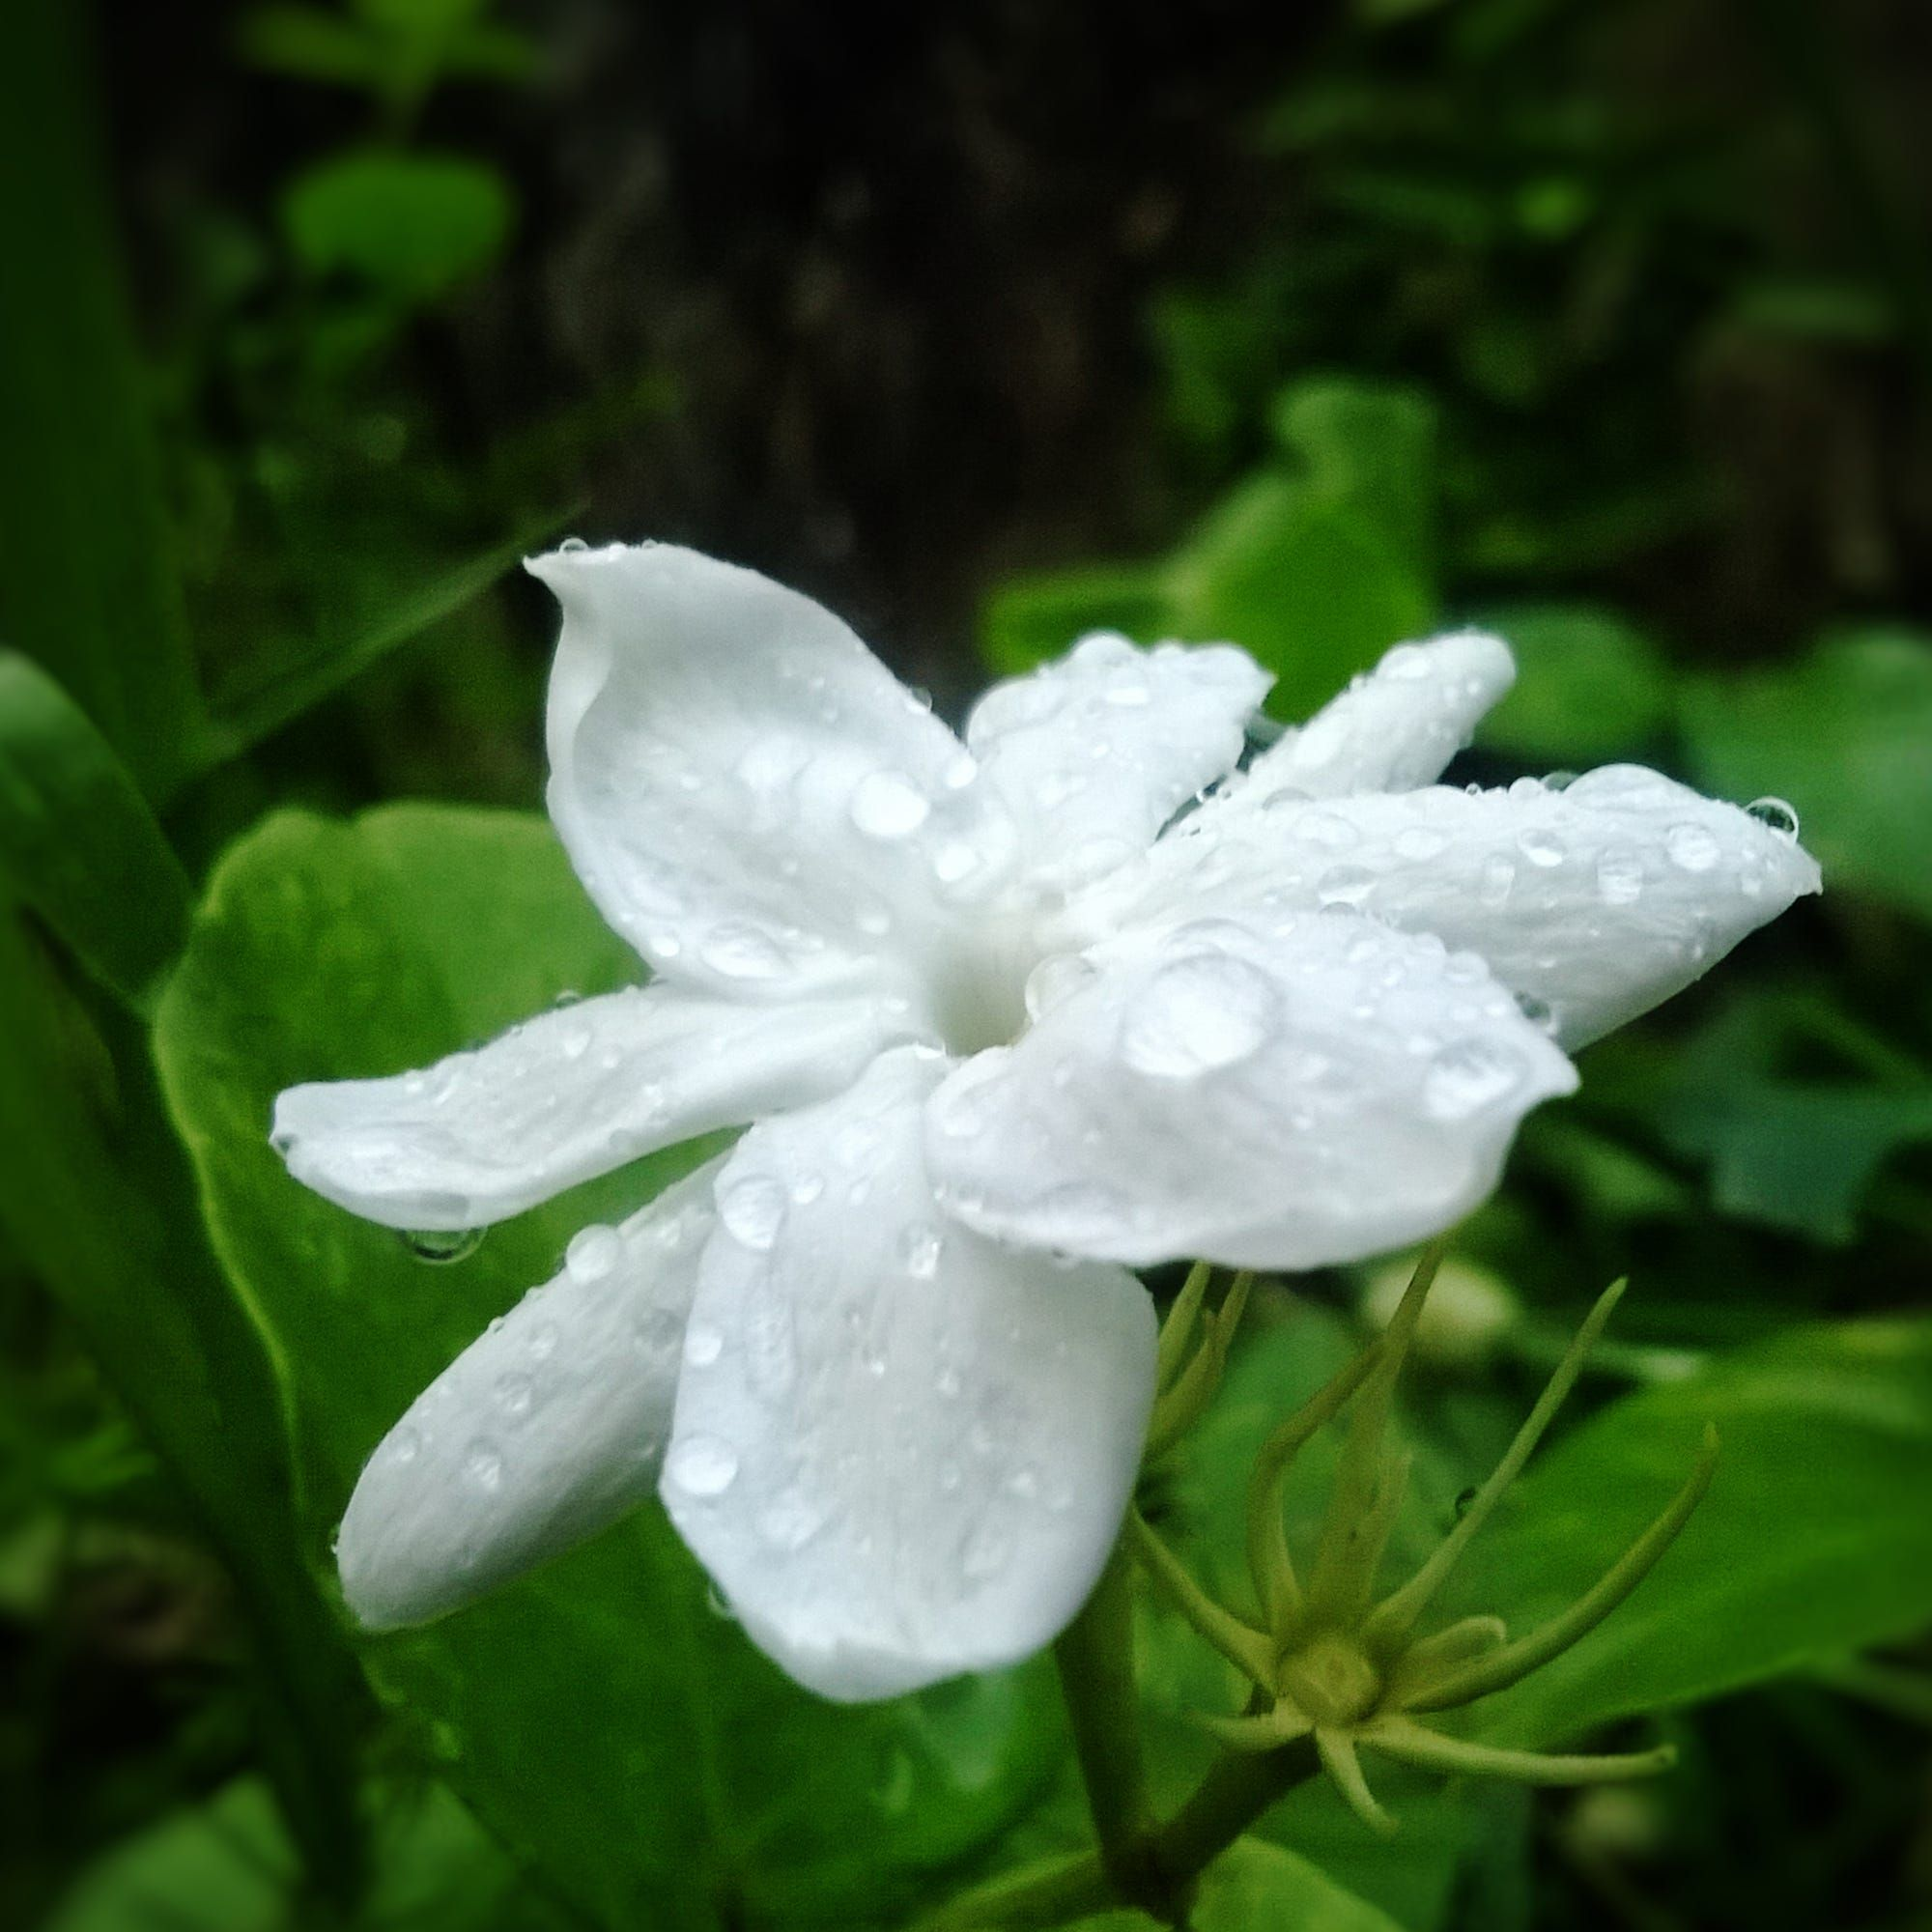 Common flower in Kerala. Captured from the garden after